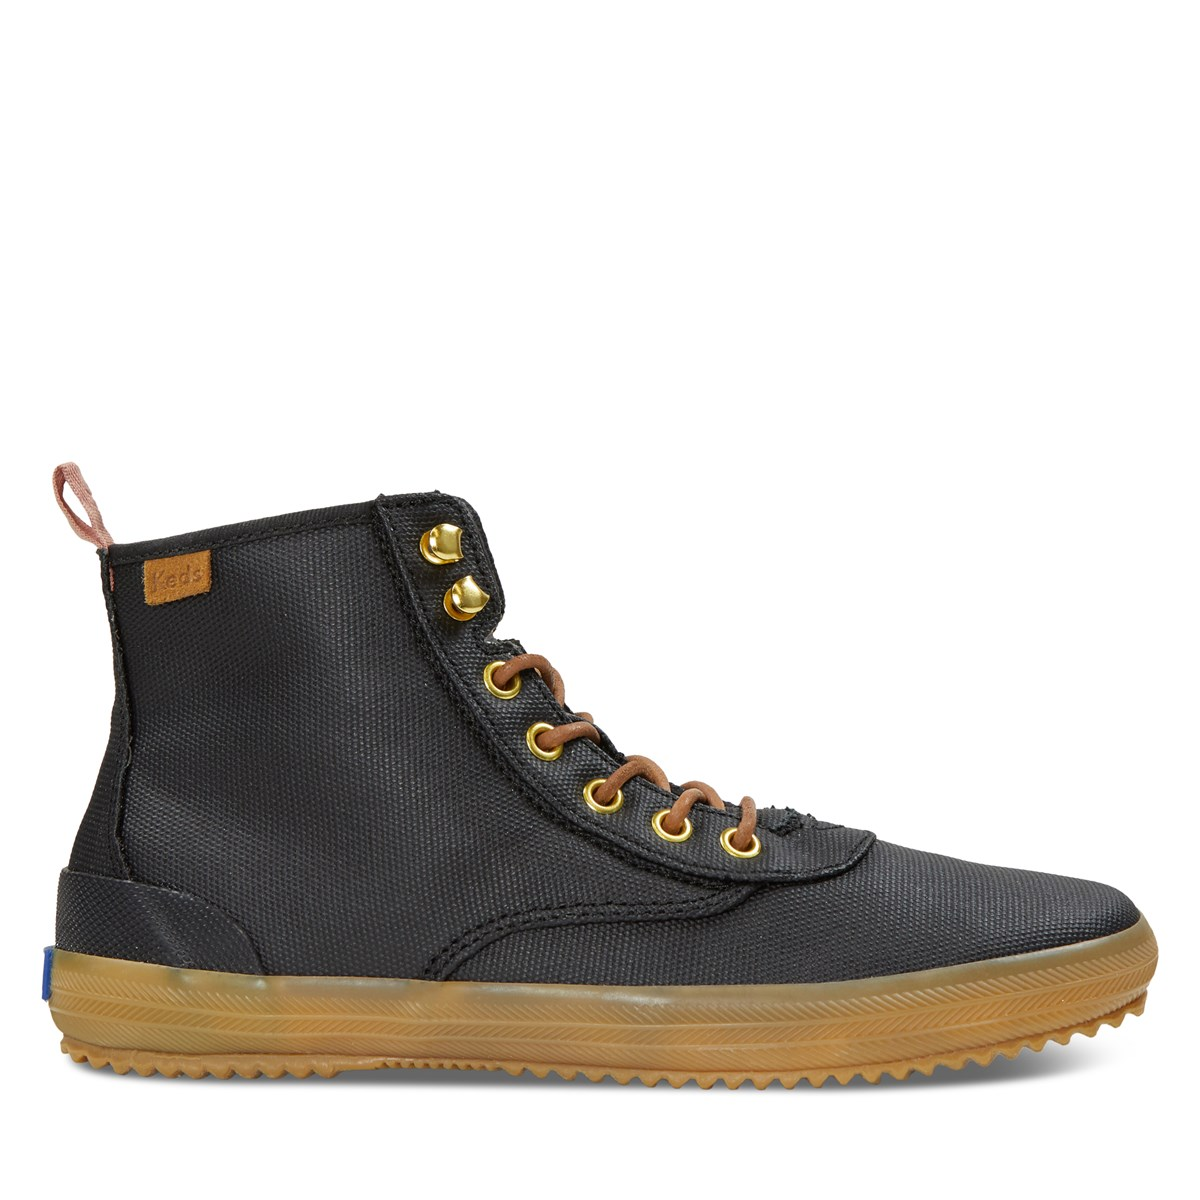 Women's Scout Splash Canvas Boots in Black